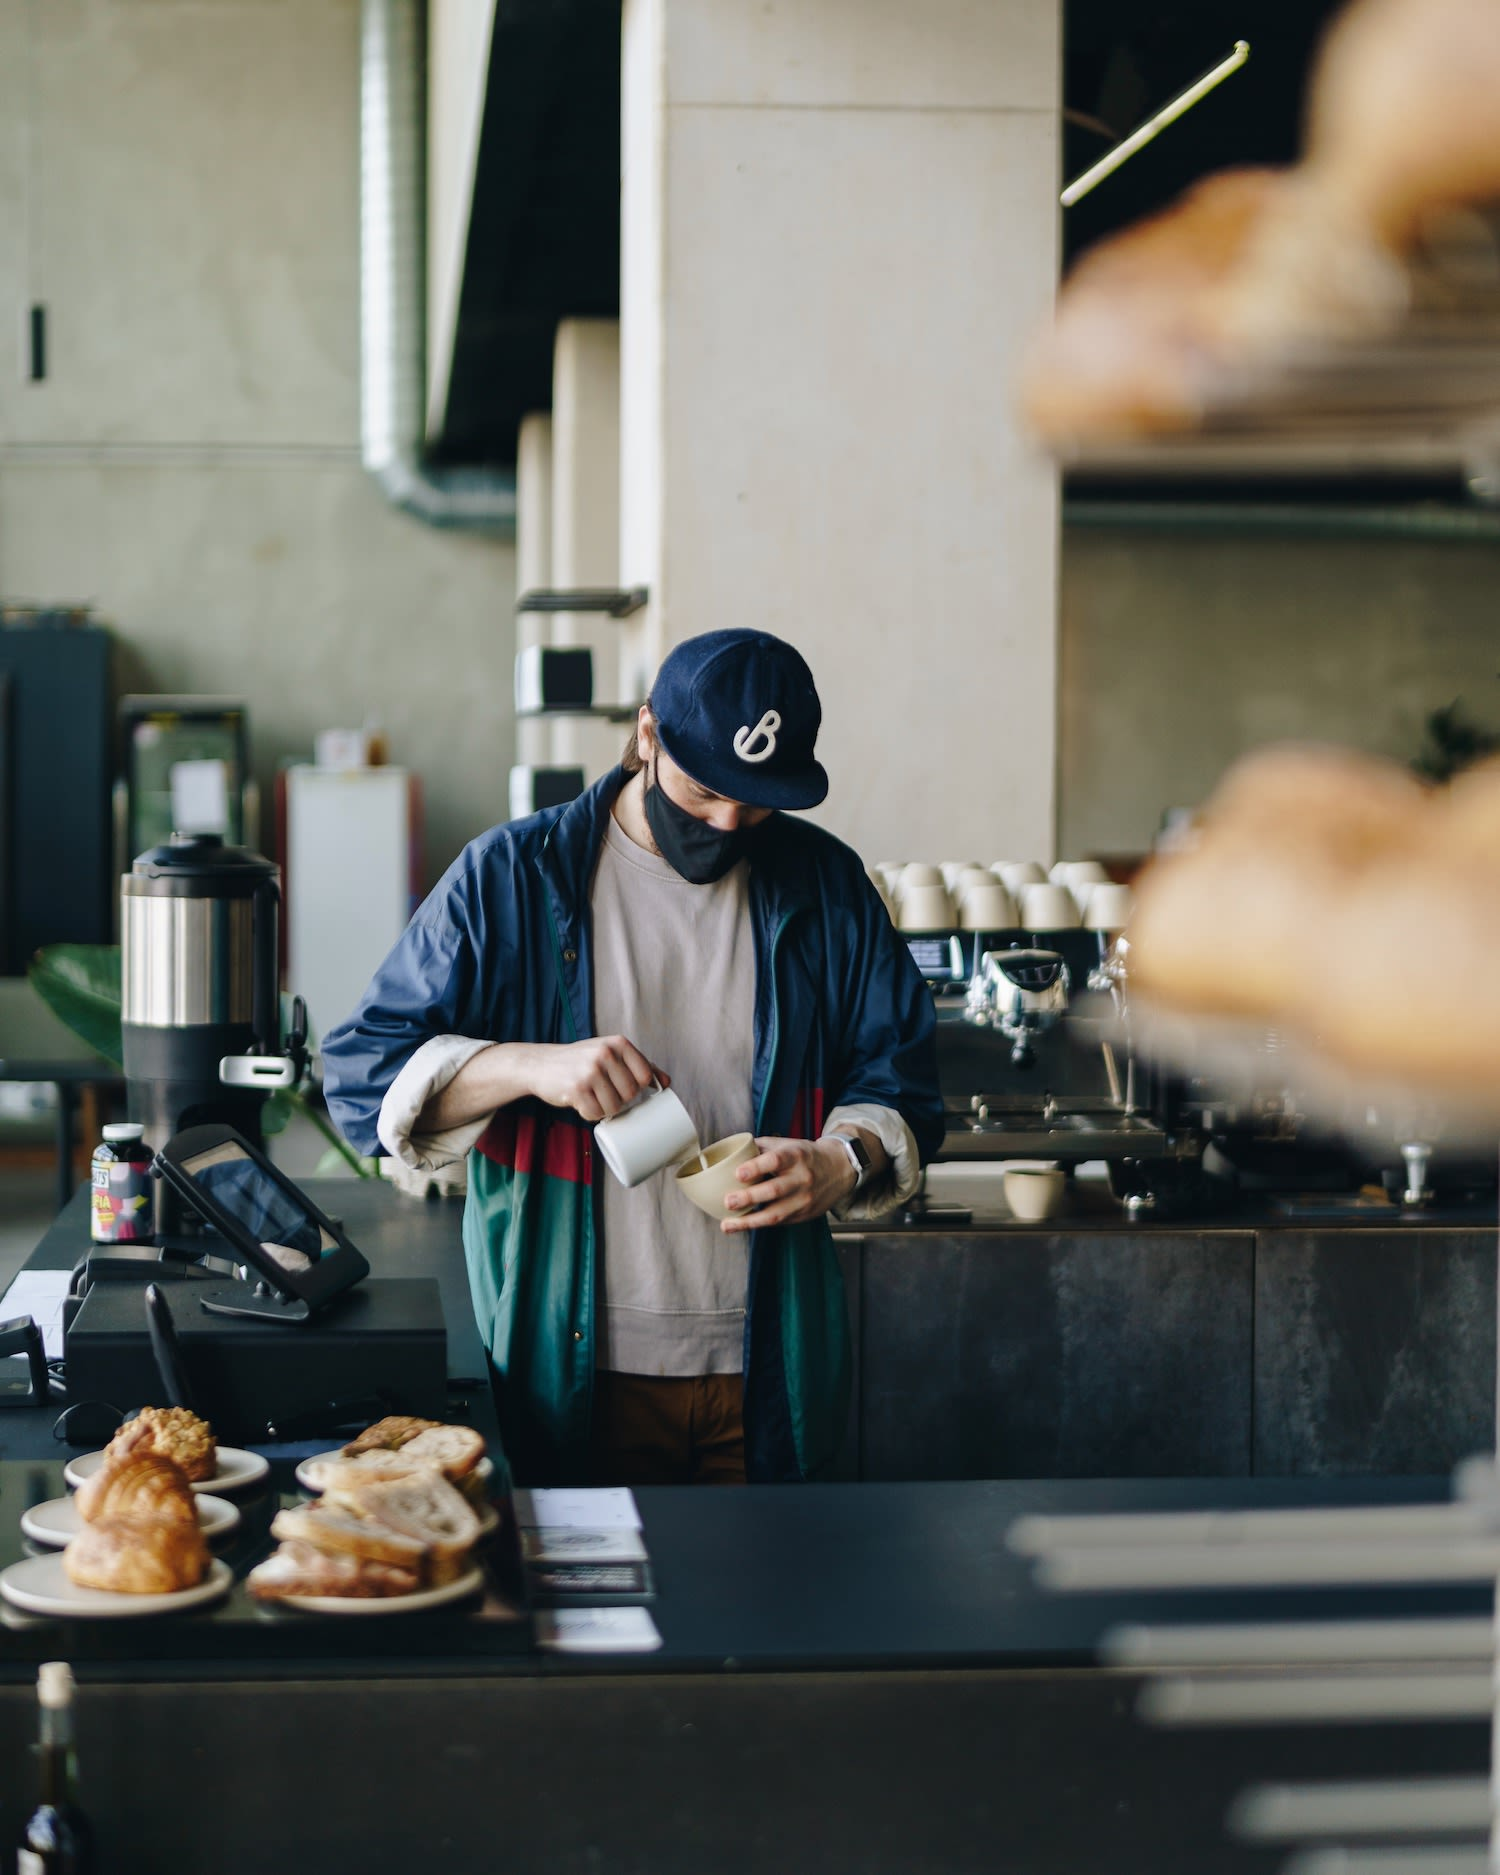 Barista from top Amsterdam coffee house Public Space pours coffee in industrial style open space with fresh pastries on display | latte art | Table Sage's Spring Favorites in Amsterdam Noord